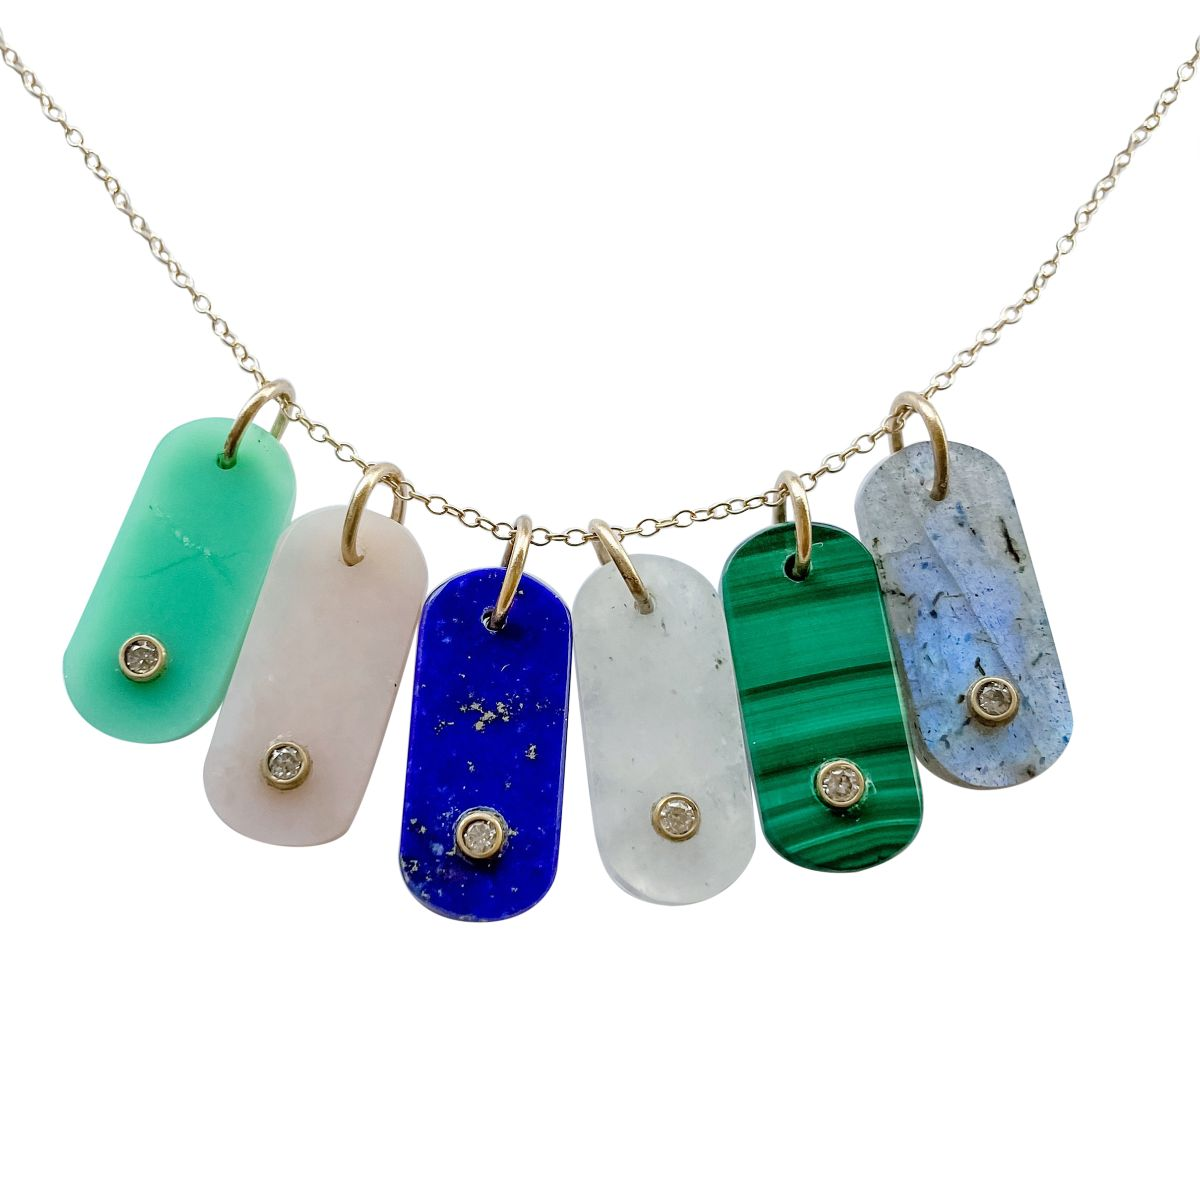 gemstone tabs with diamonds hanging on a chain